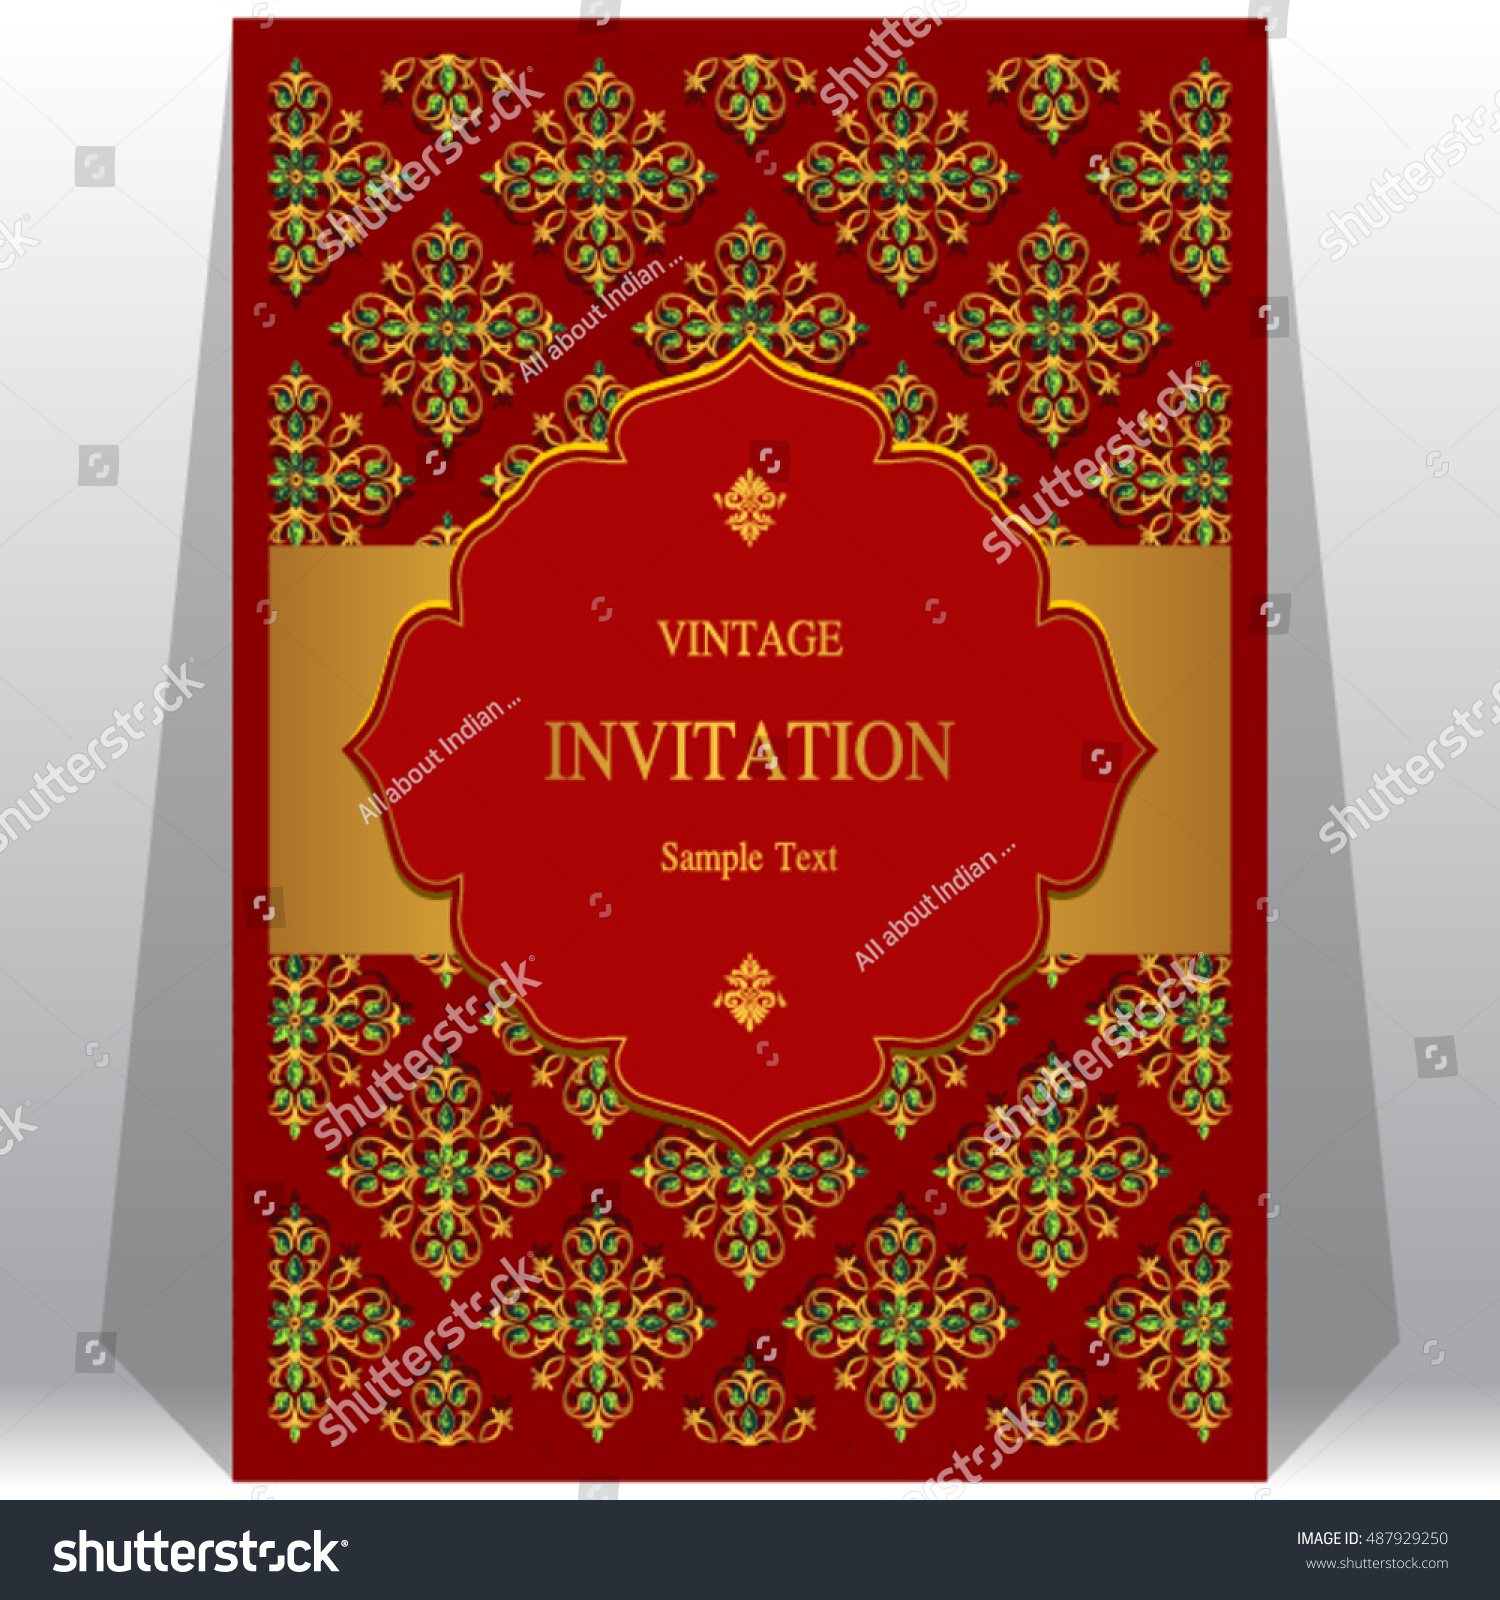 Vintage gold background. Retro style frame of 1920s | EZ Canvas